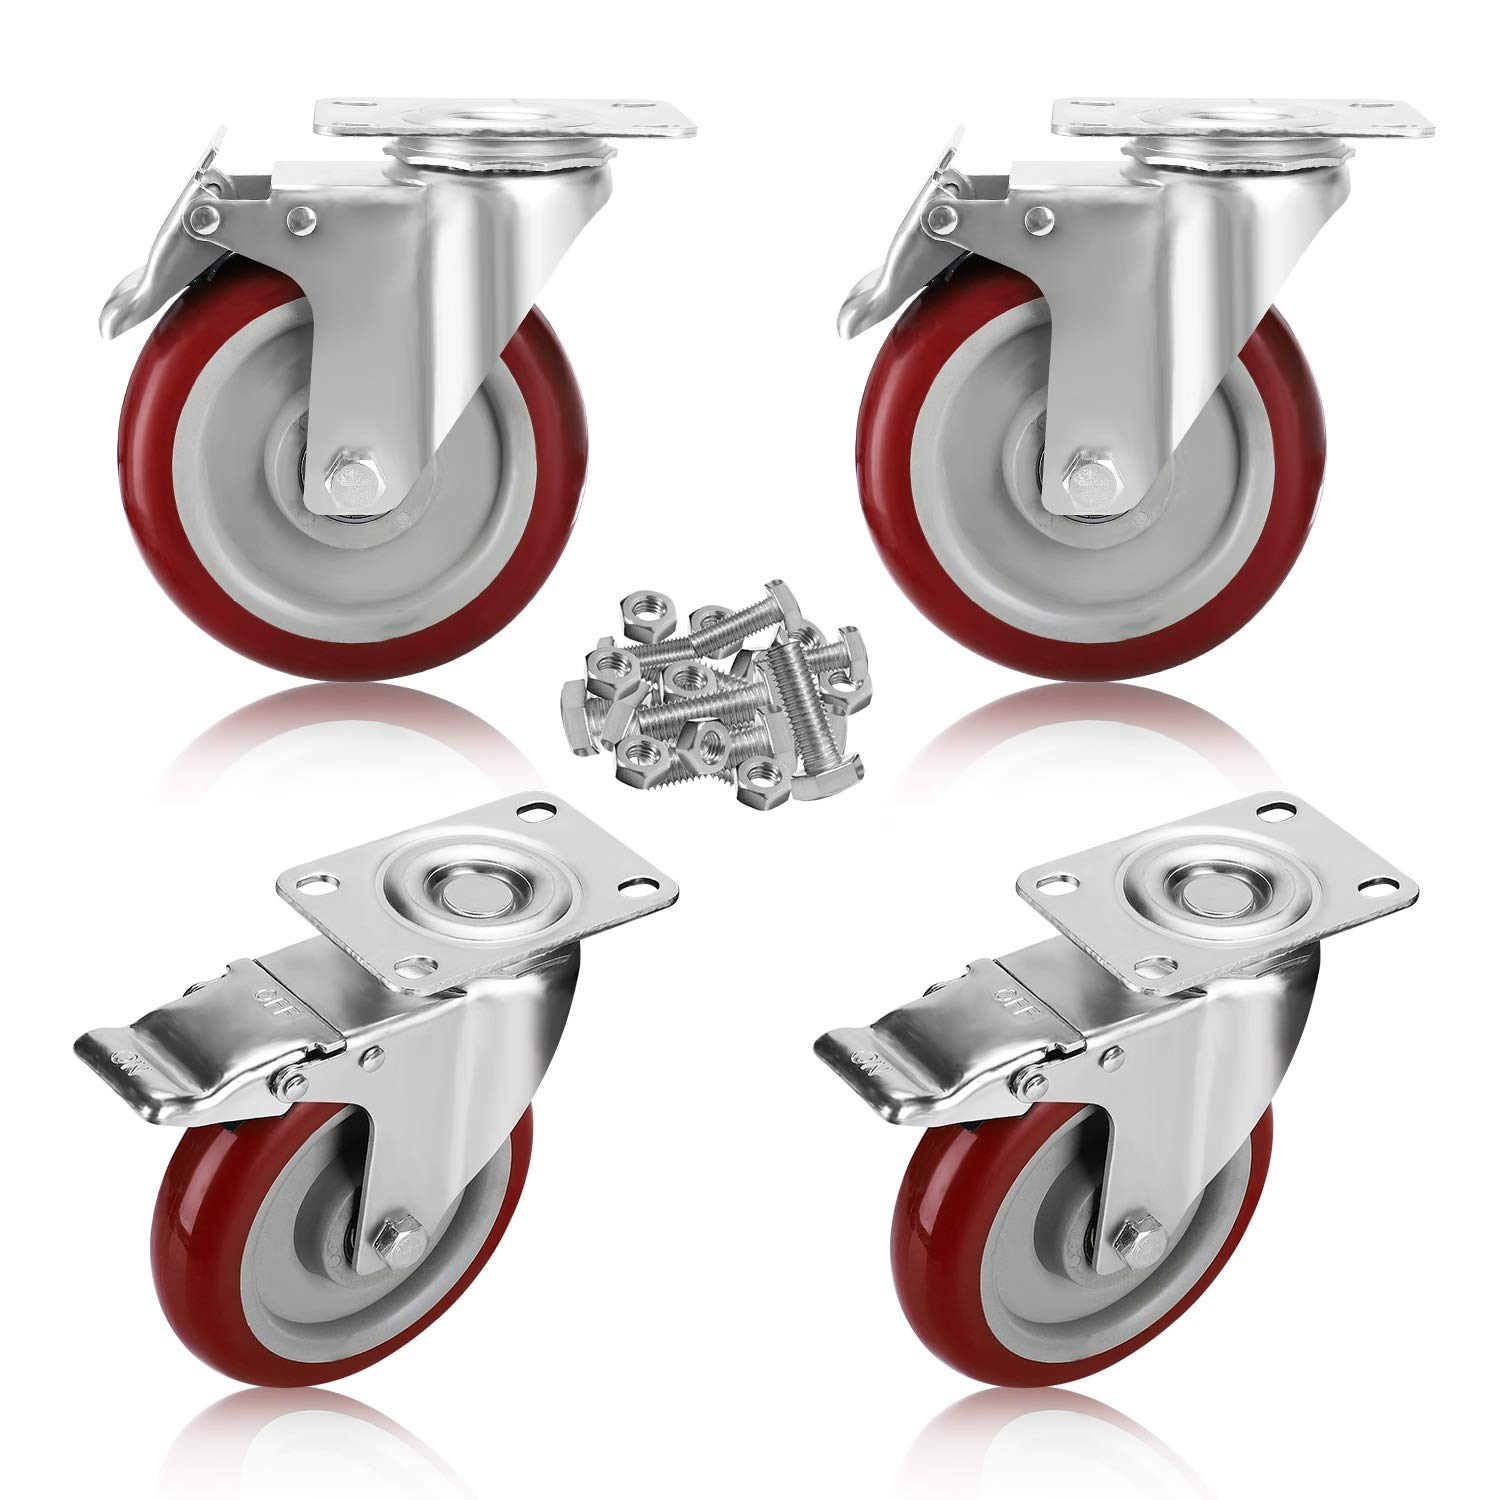 PRITEK 5 inch Swivel Caster Wheels Bearing 1500 lbs 4 Pack Heavy Duty Rubber Plate Casters All with Safety Brake No Noise Lockable Swivel Casters Matching 16pcs Screws Set